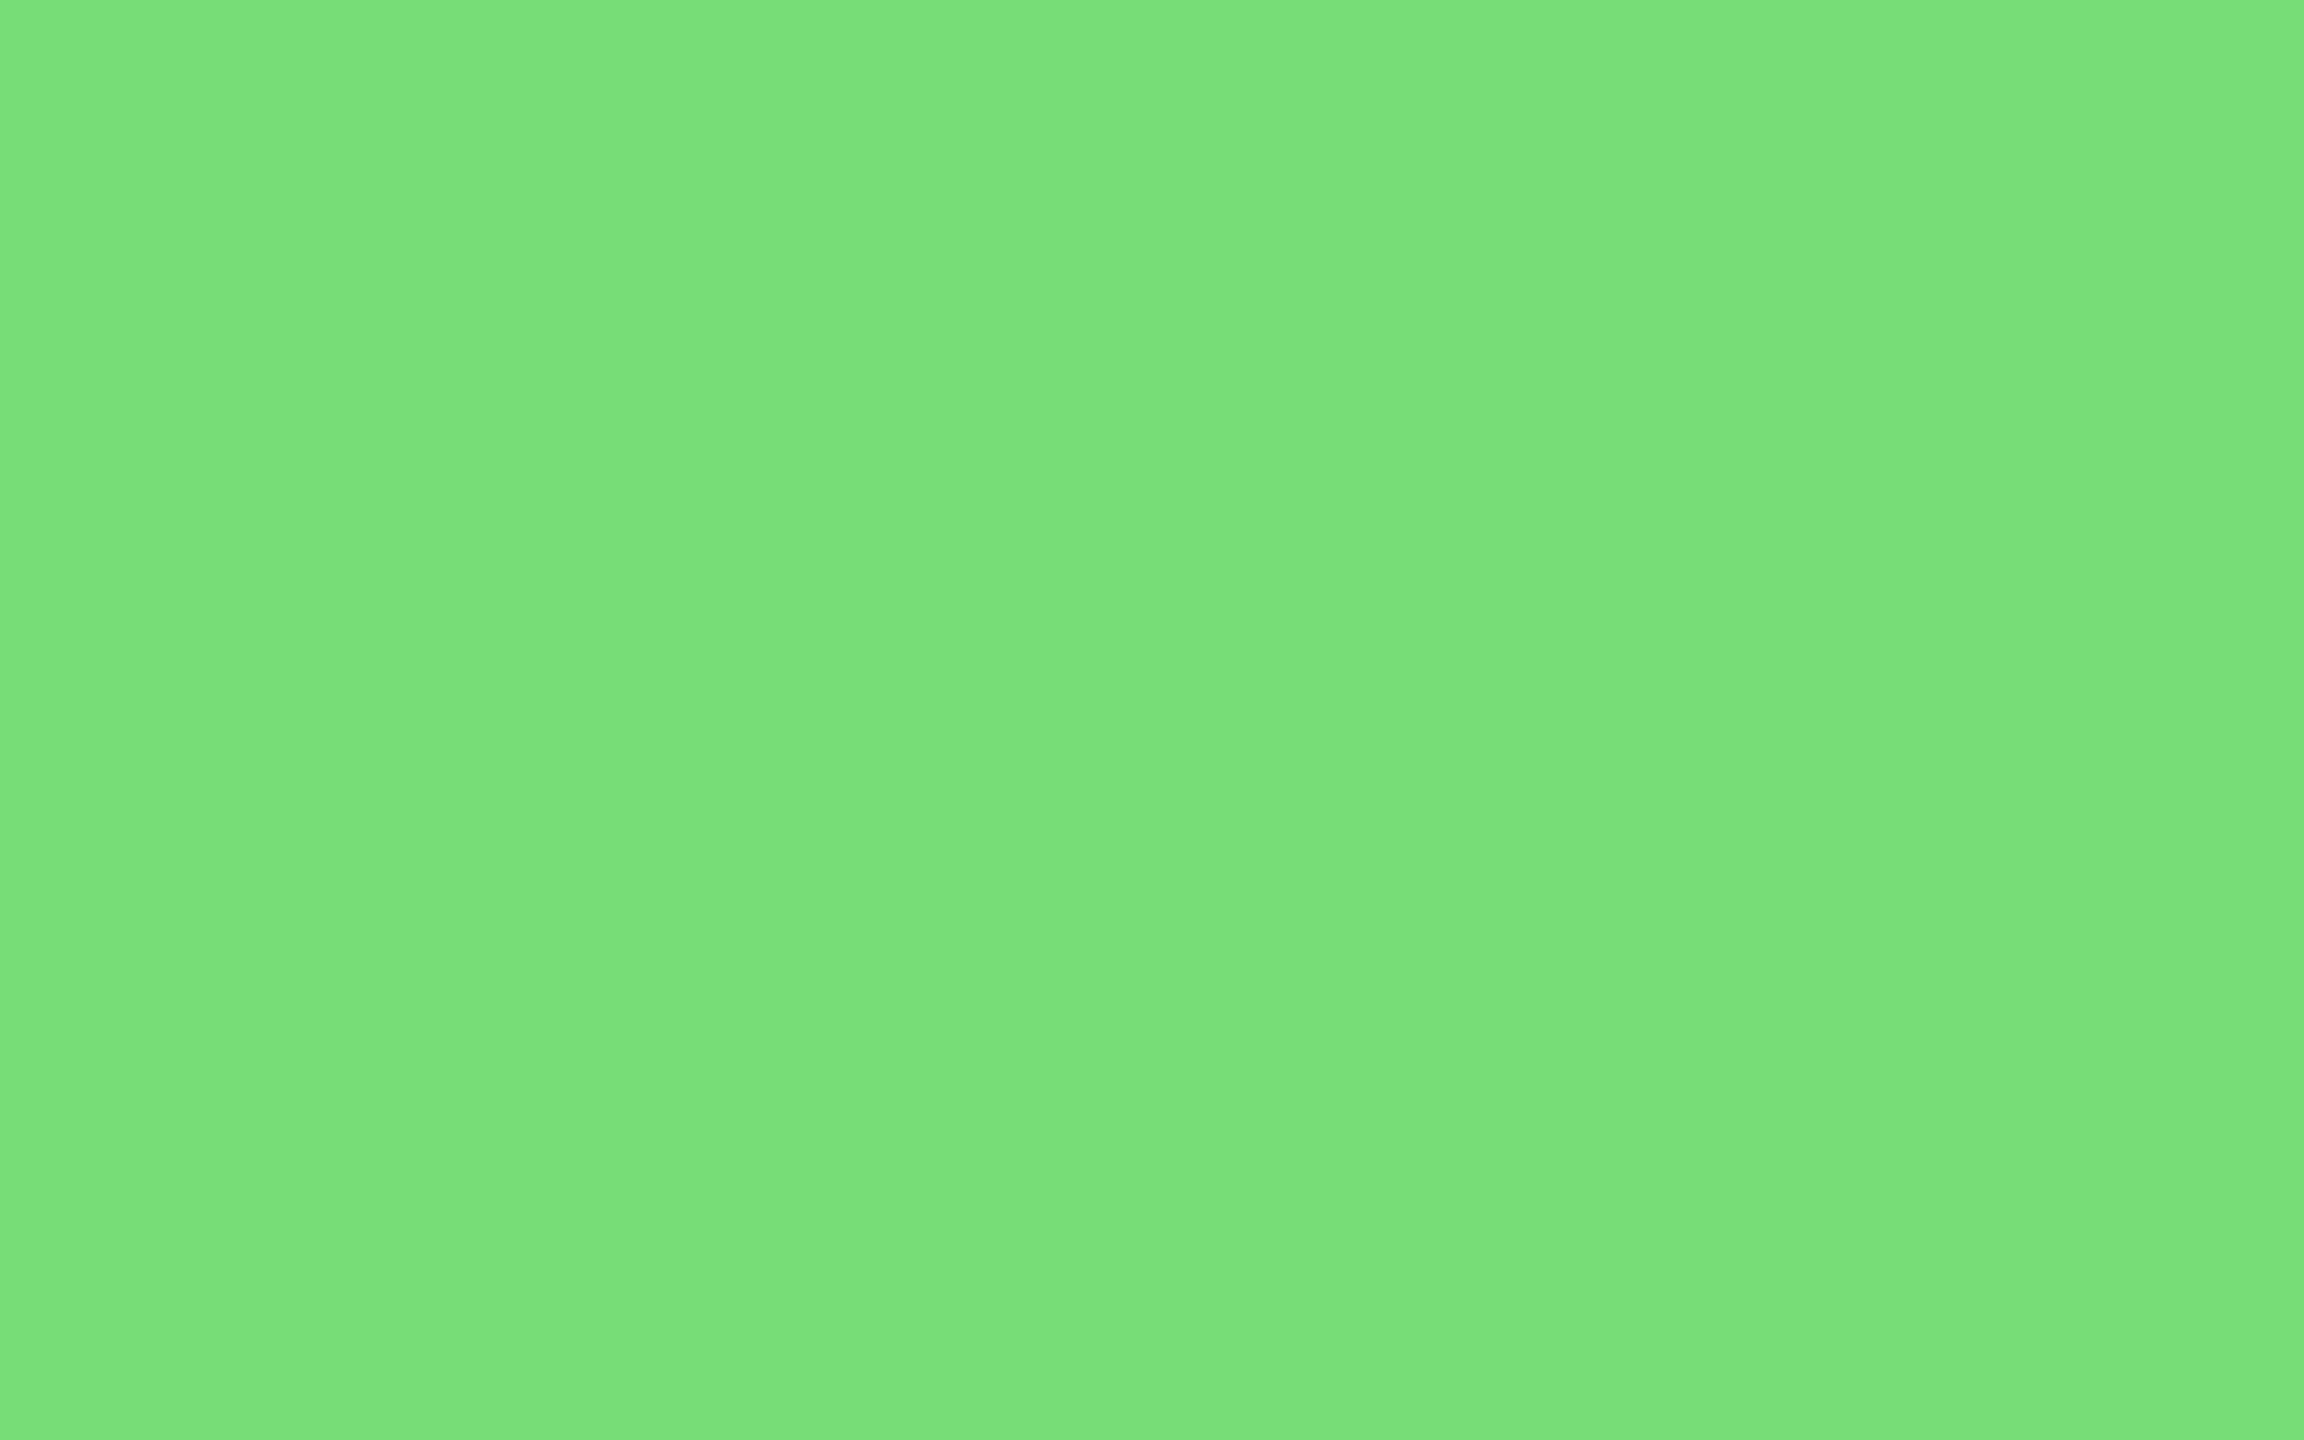 2304x1440 Pastel Green Solid Color Background